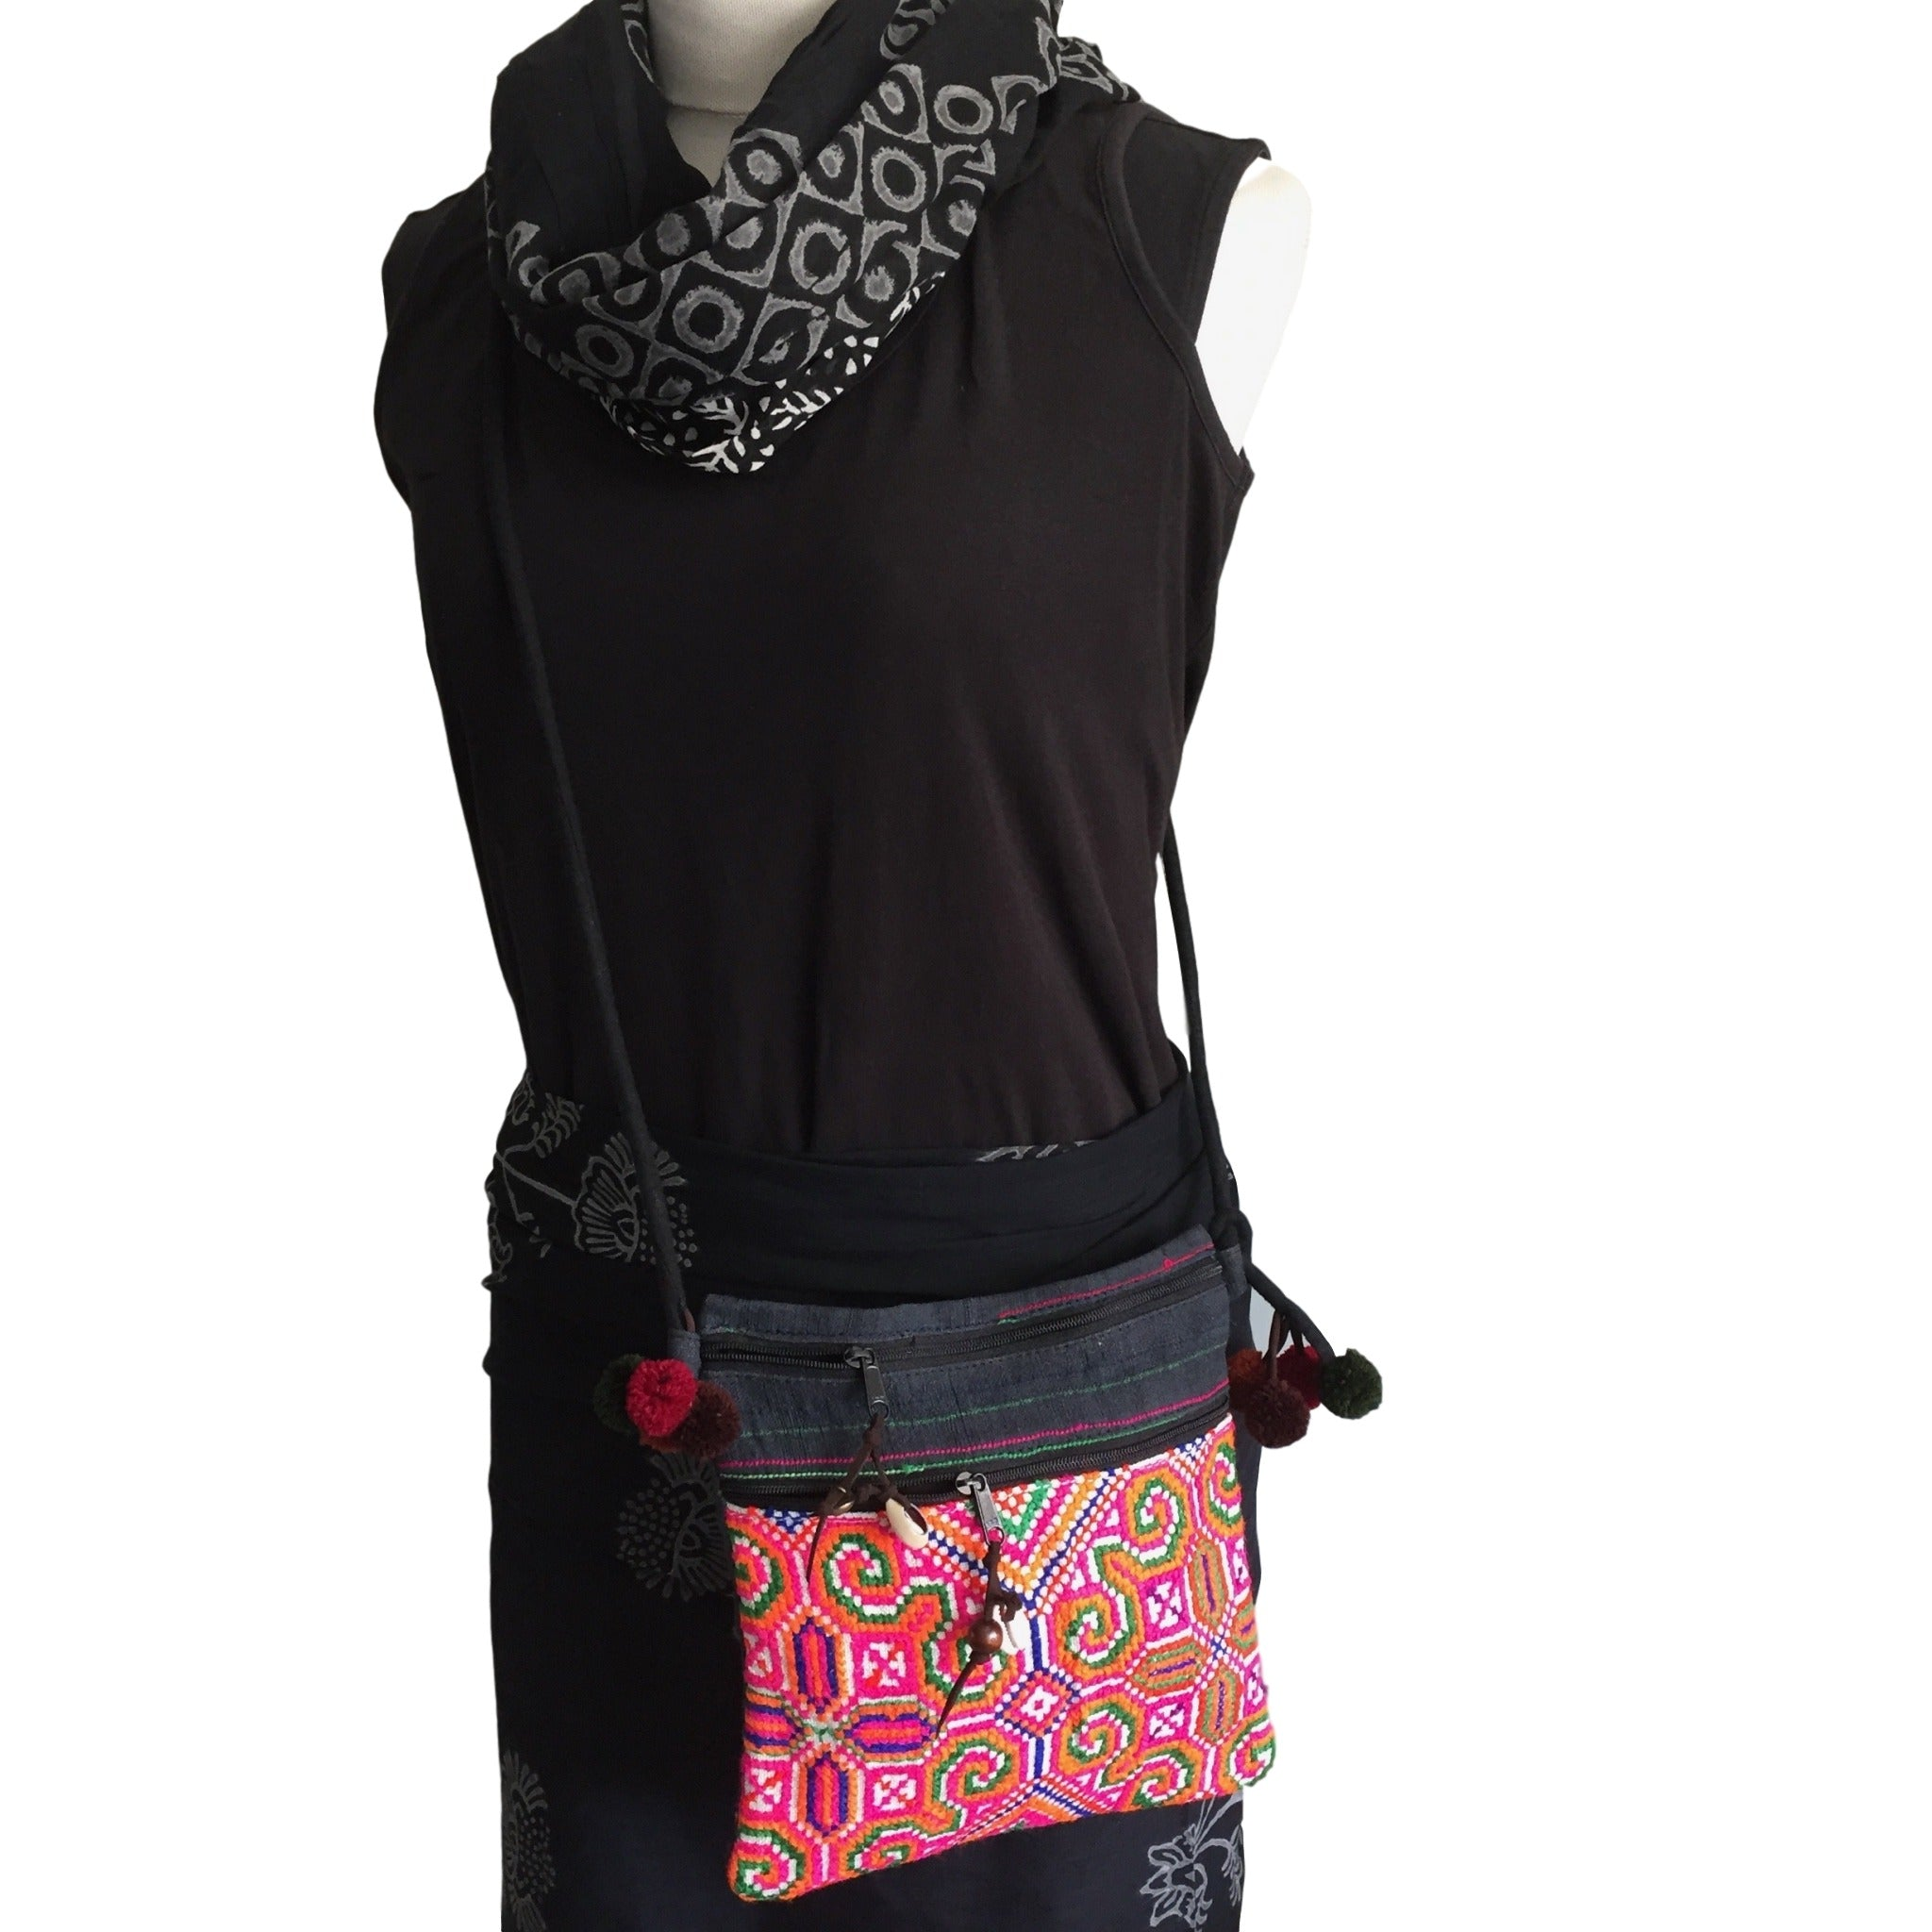 Embroidered Cross body bag - Hmong hemp - Pallu Design